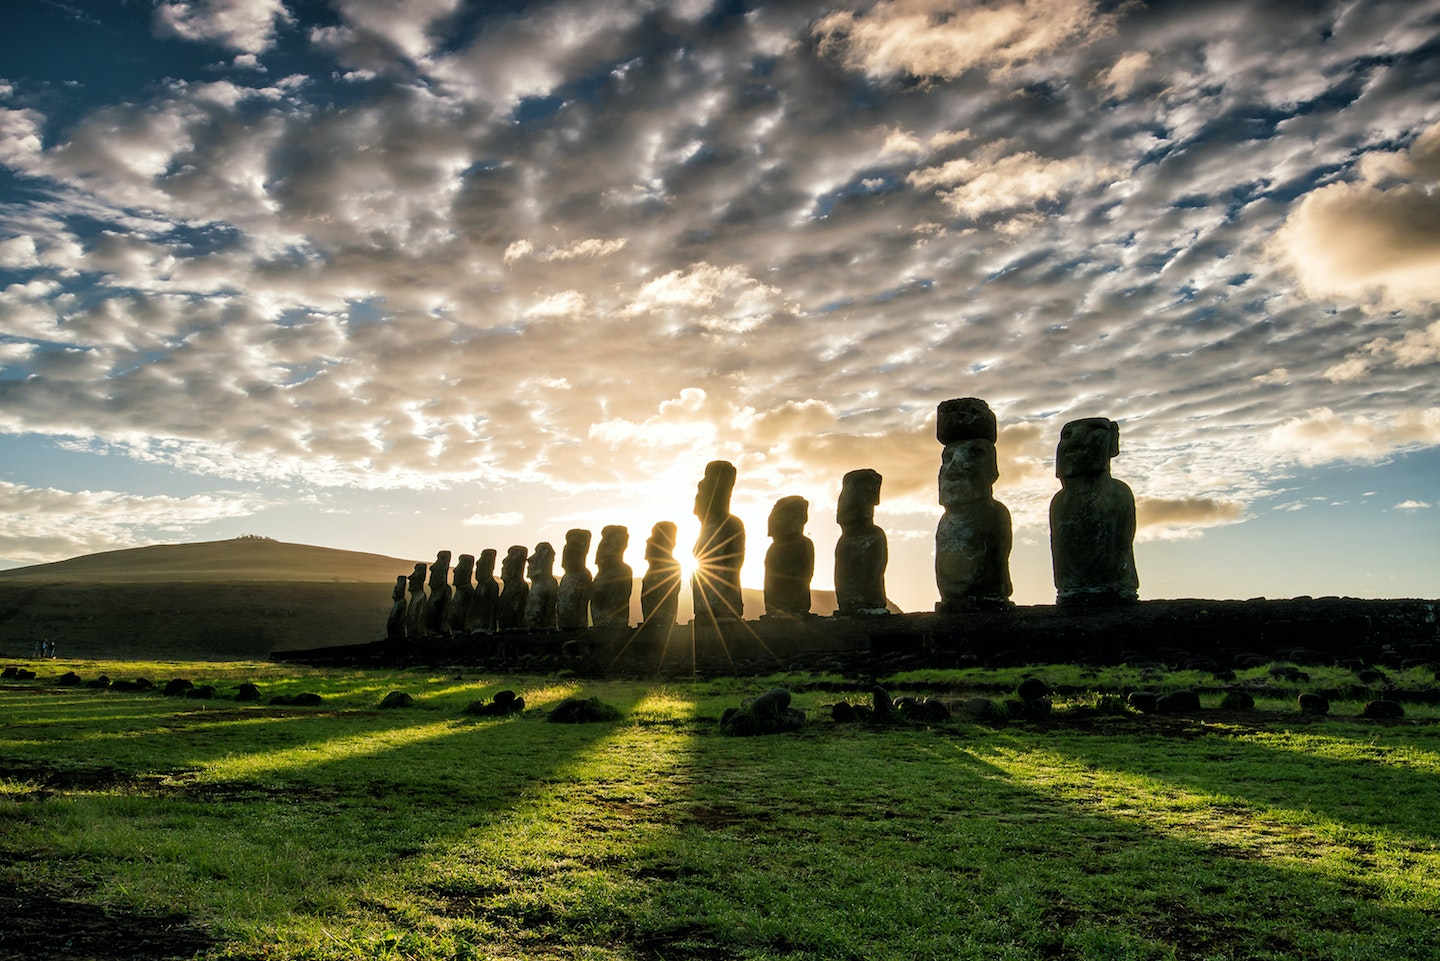 Holland America Line's world voyage features numerous stops in South America, including at Easter Island, Chile.